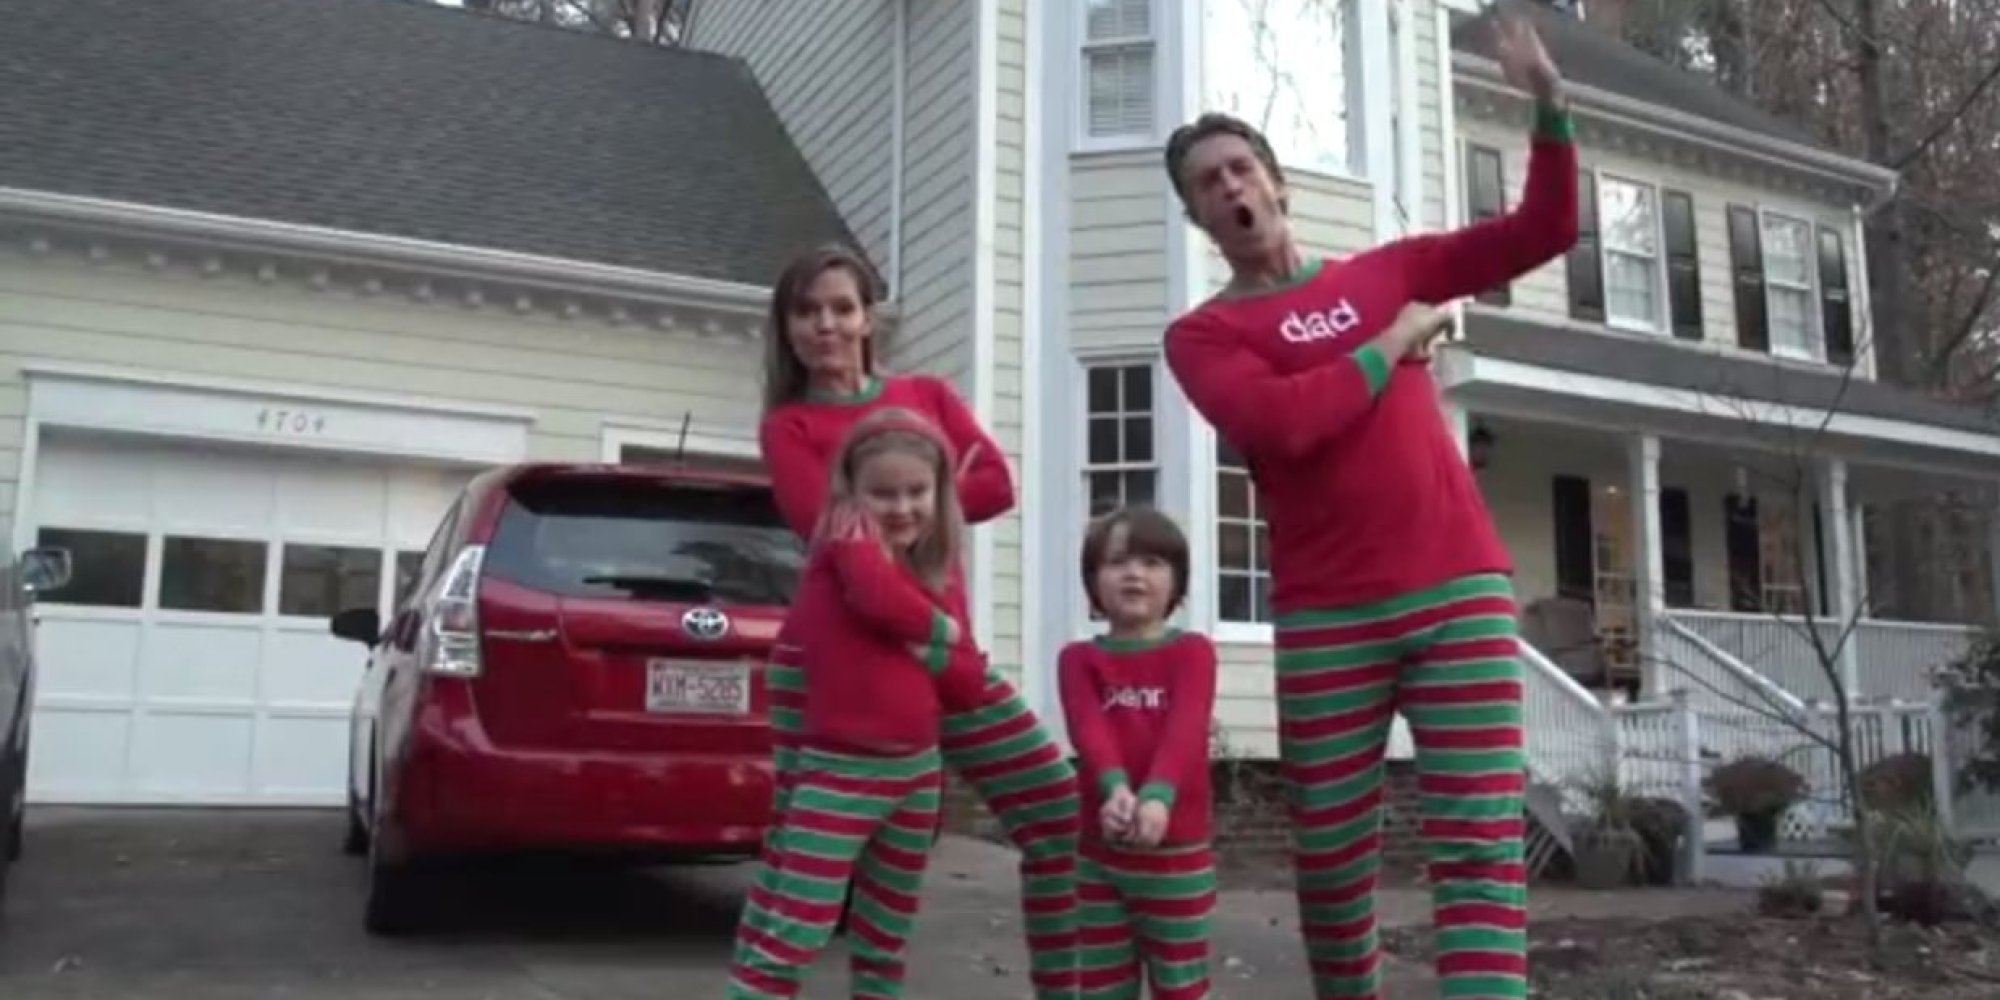 WATCH: Wacky Christmas Card Video Goes Viral